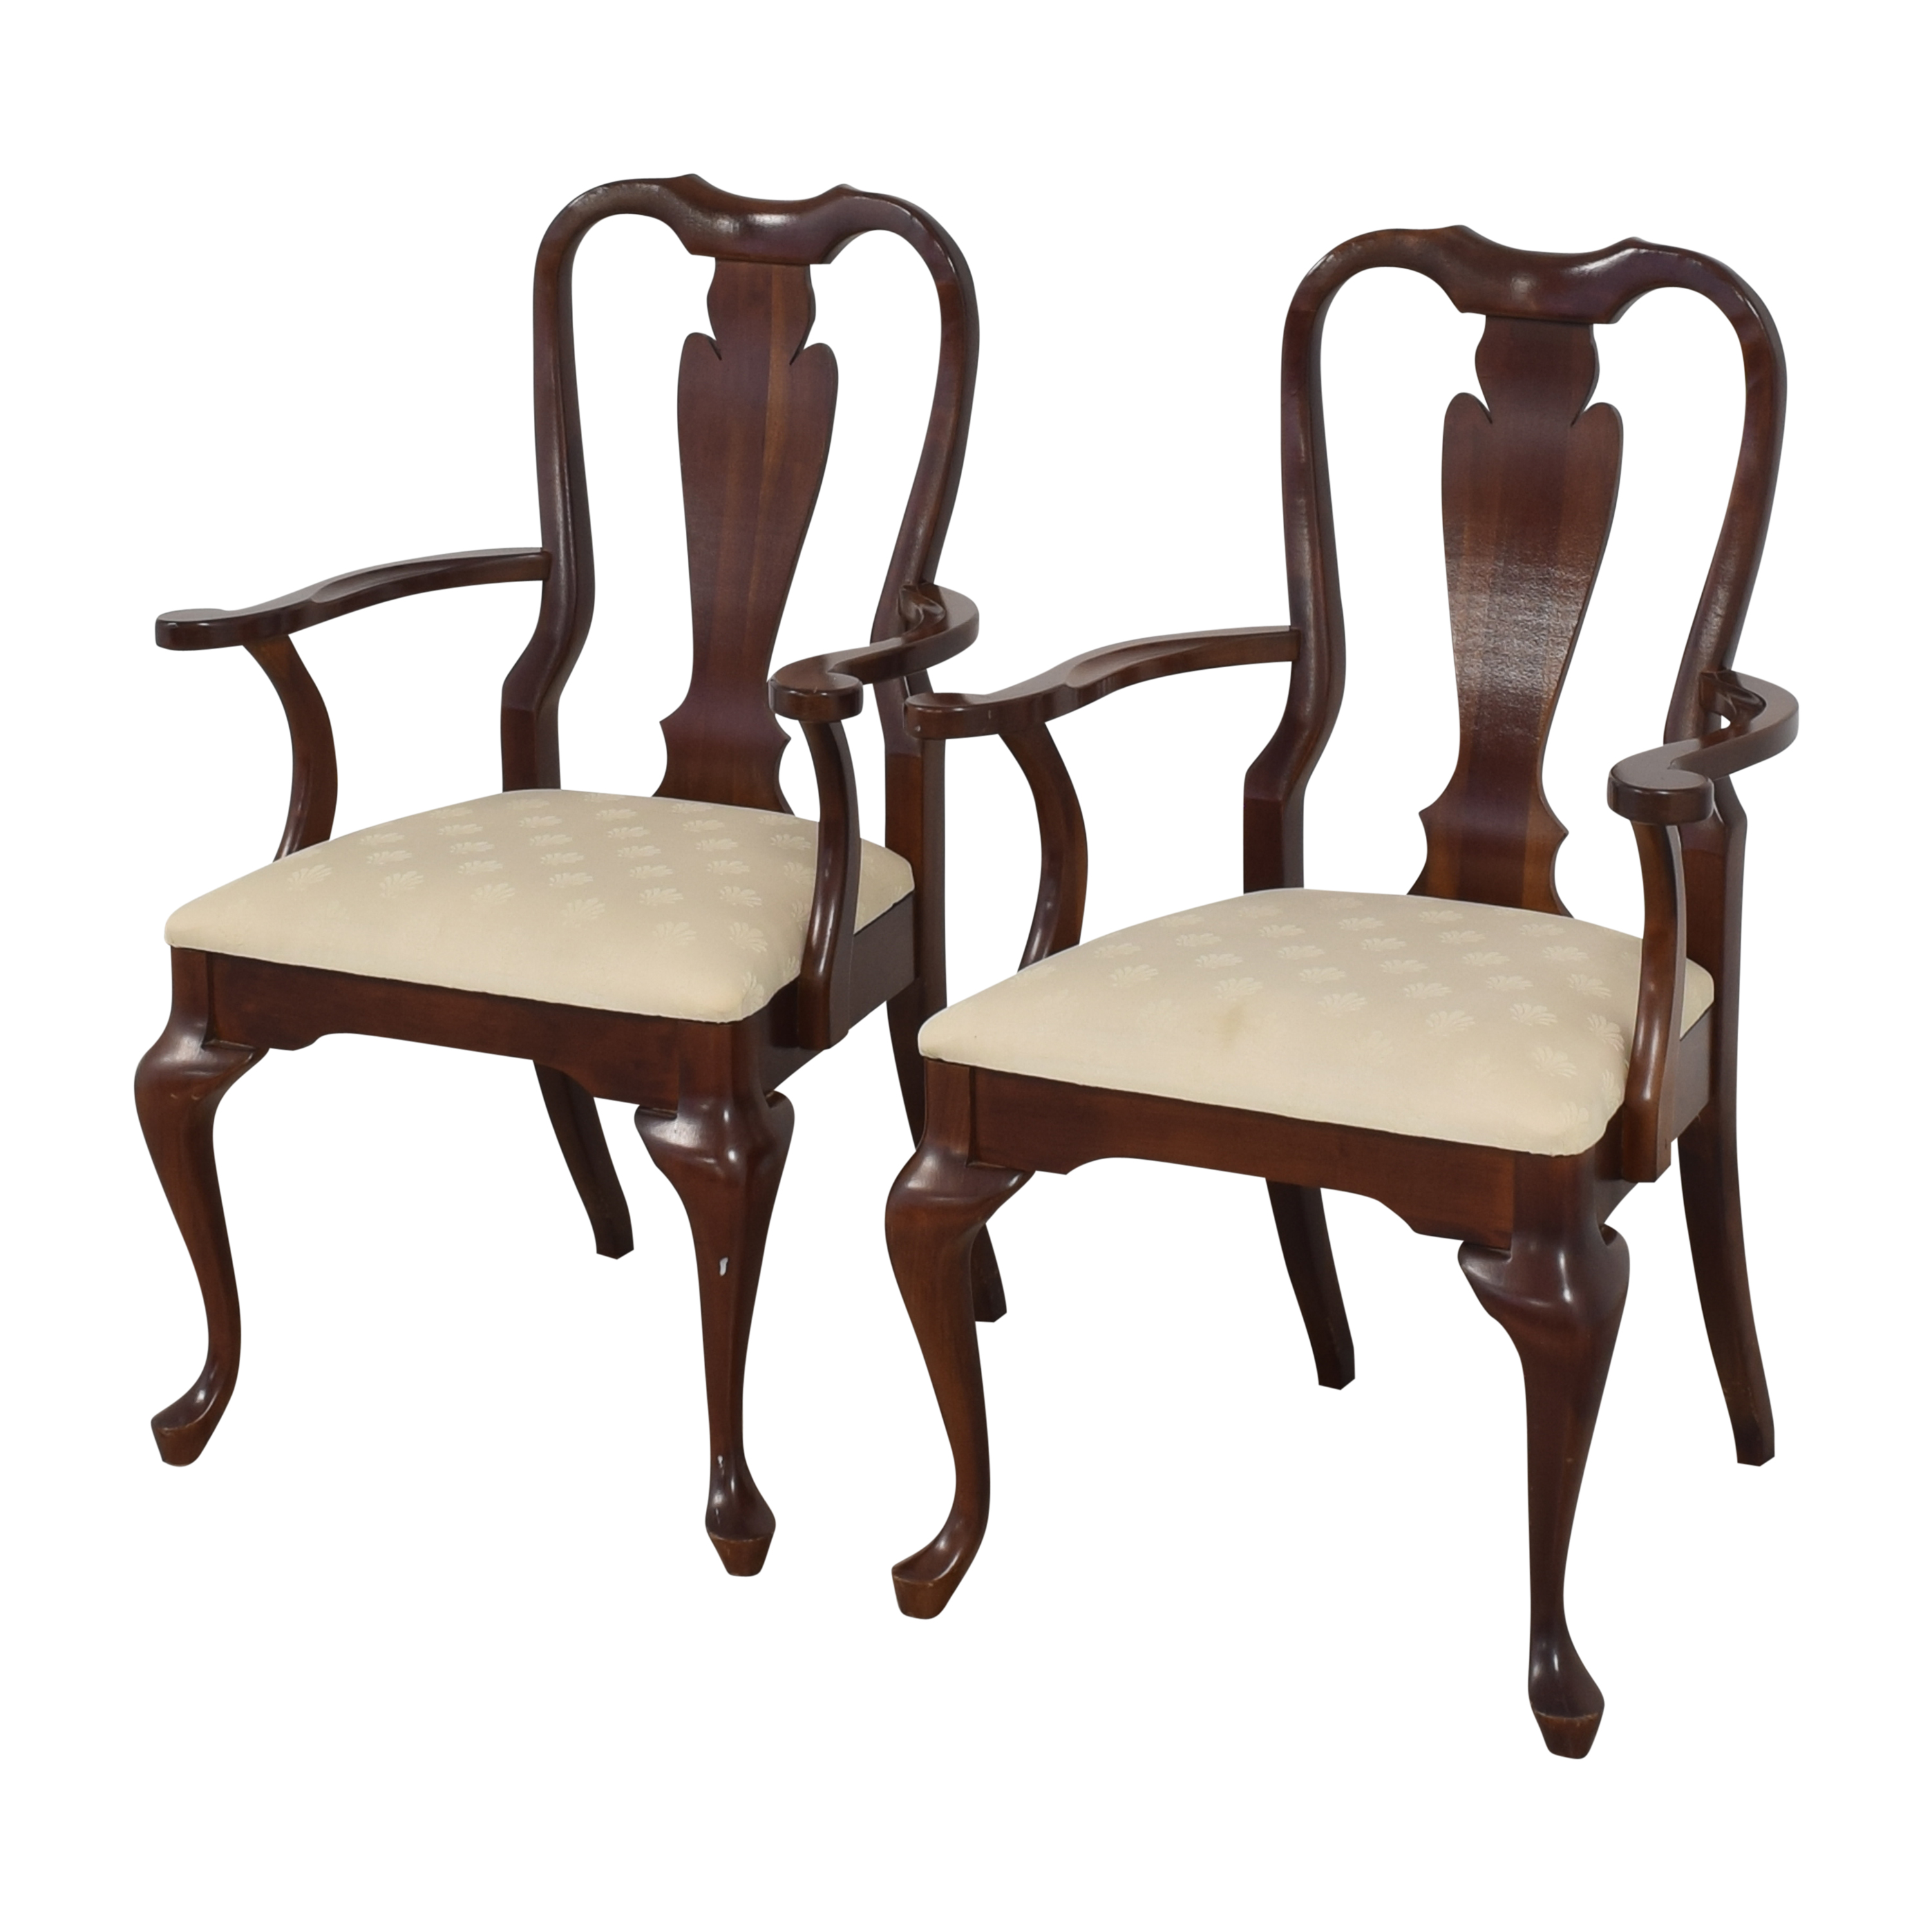 Cresent Furniture Cresent Furniture Queen Anne Dining Arm Chairs ma